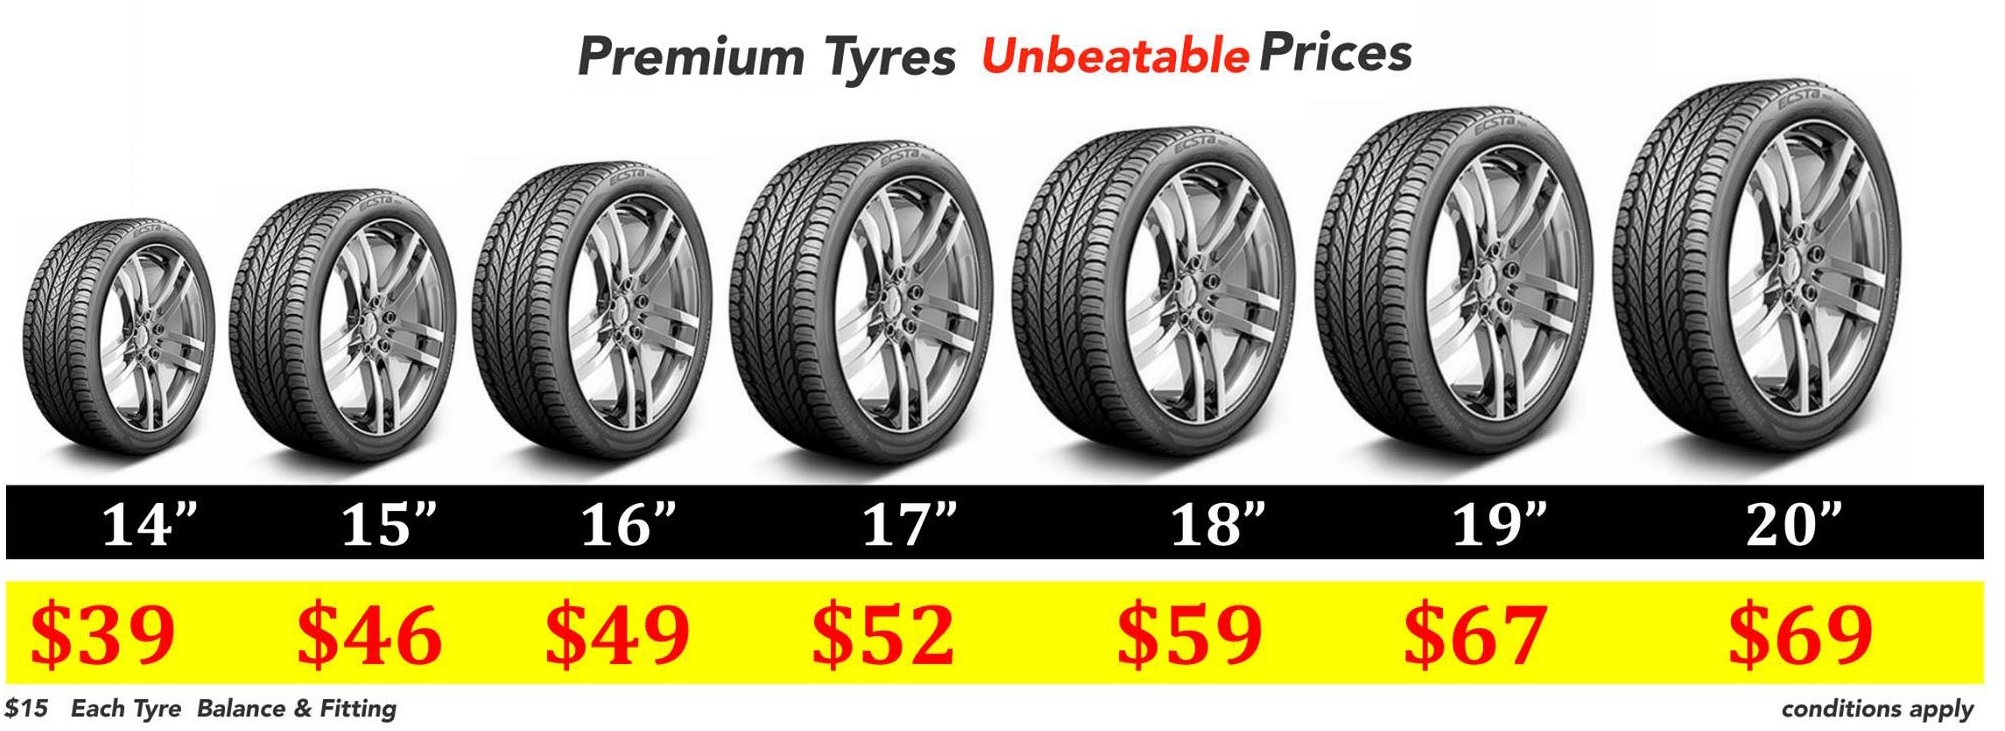 Premium Tyres lowest prices